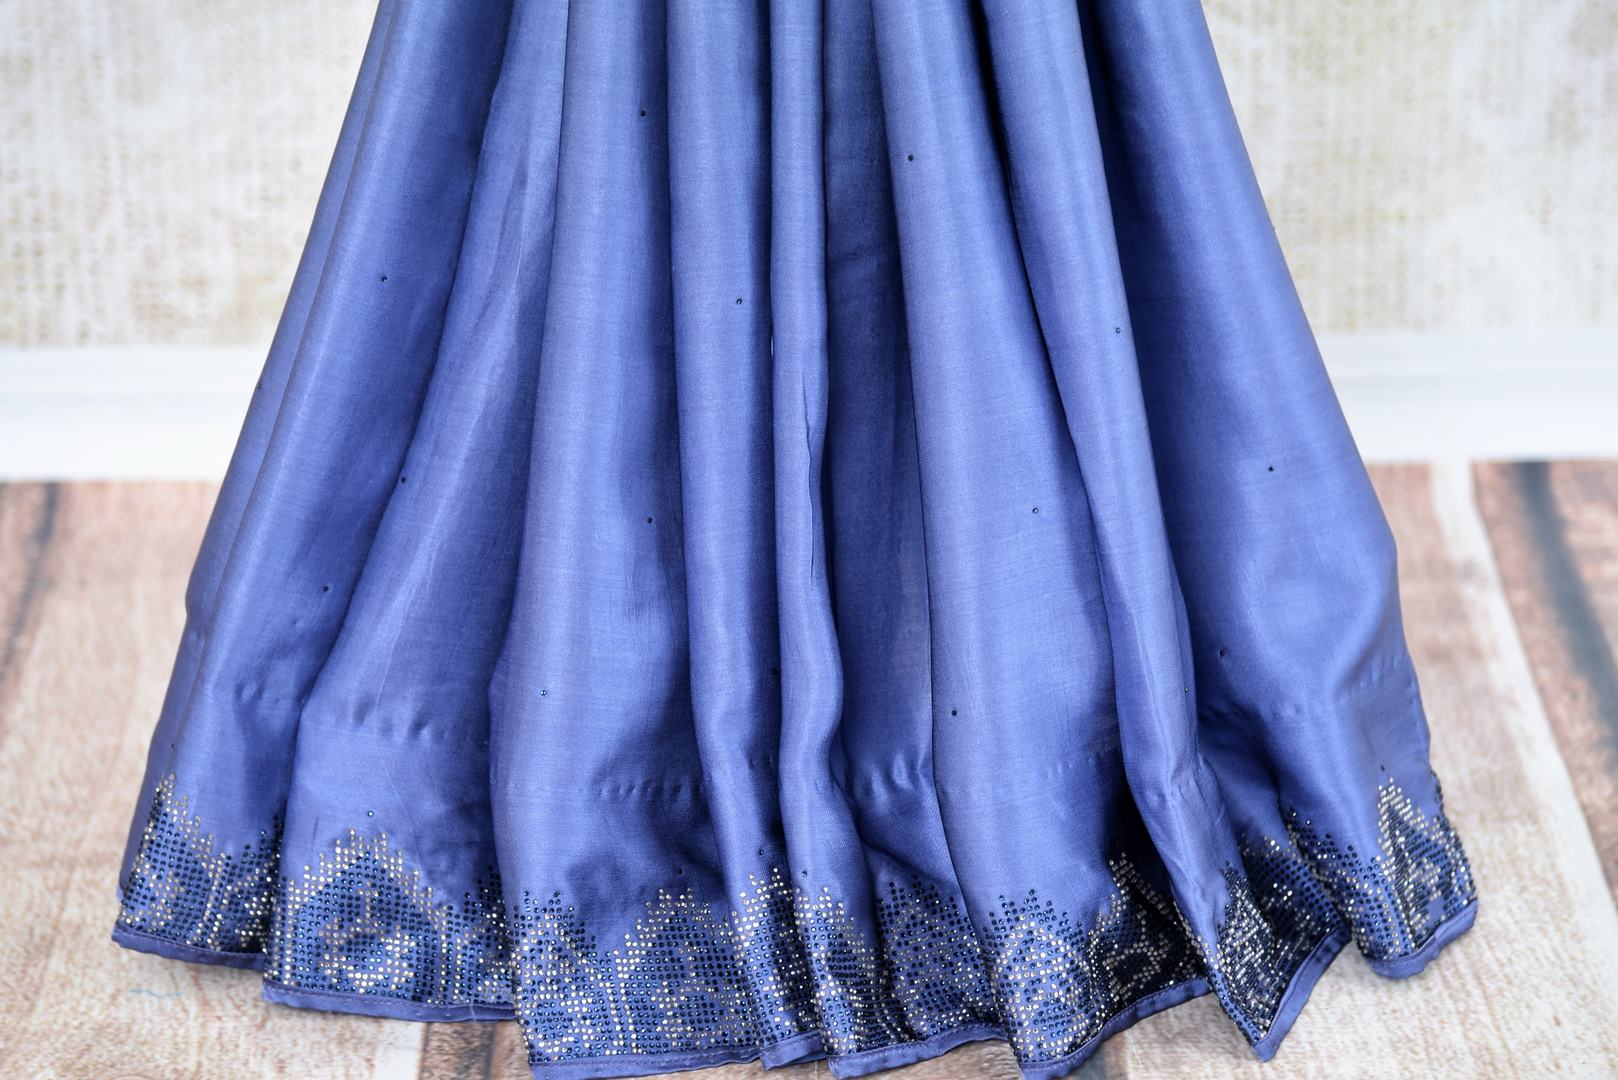 Buy elegant blue crepe silk designer sari online in USA with Swarovski stonework. The saree comes with a designer saree blouse perfect for a dazzling party look. Spoil yourself with an exquisite collection of Indian designer sarees in USA available at Pure Elegance Indian clothing store. -pleats